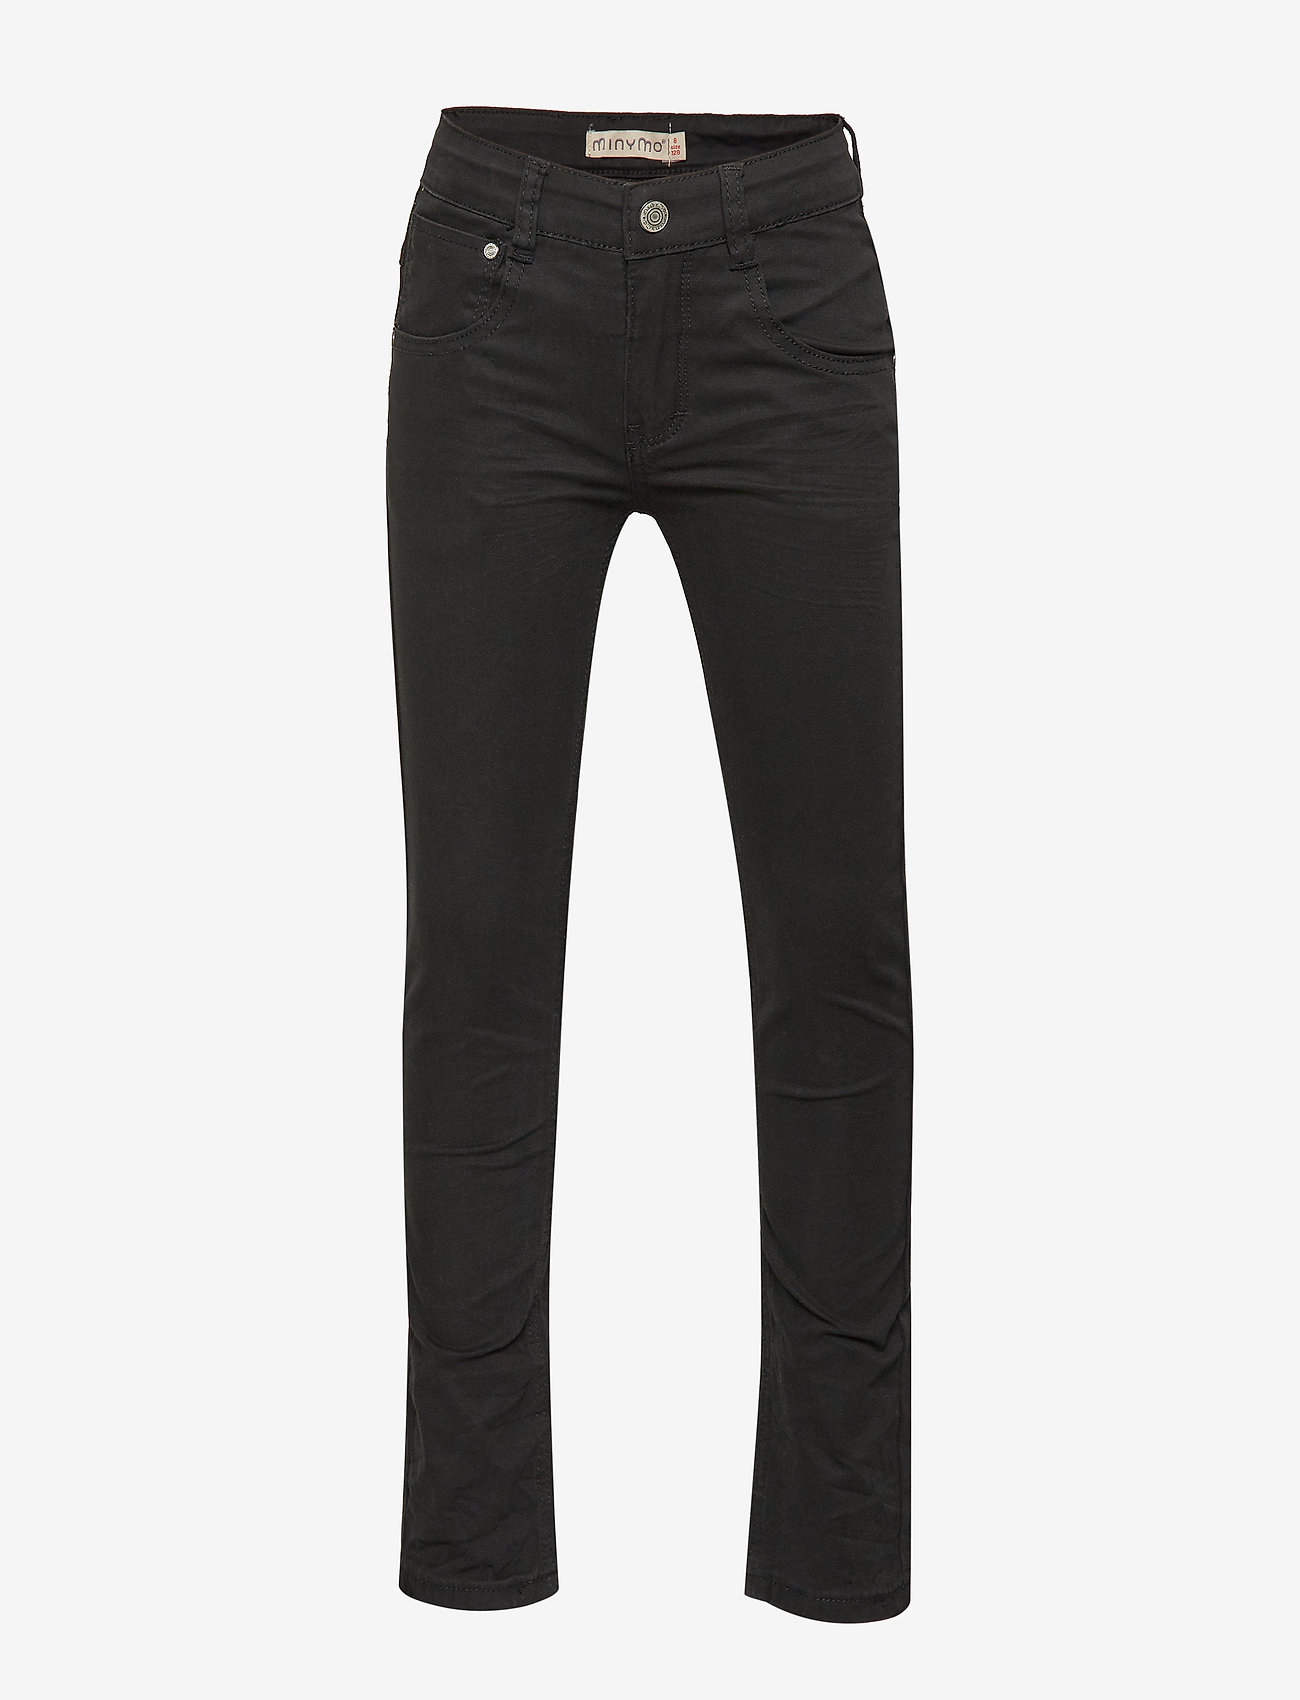 Minymo - Basic 84 -Pants twill-slim - trousers - anthracite - 0